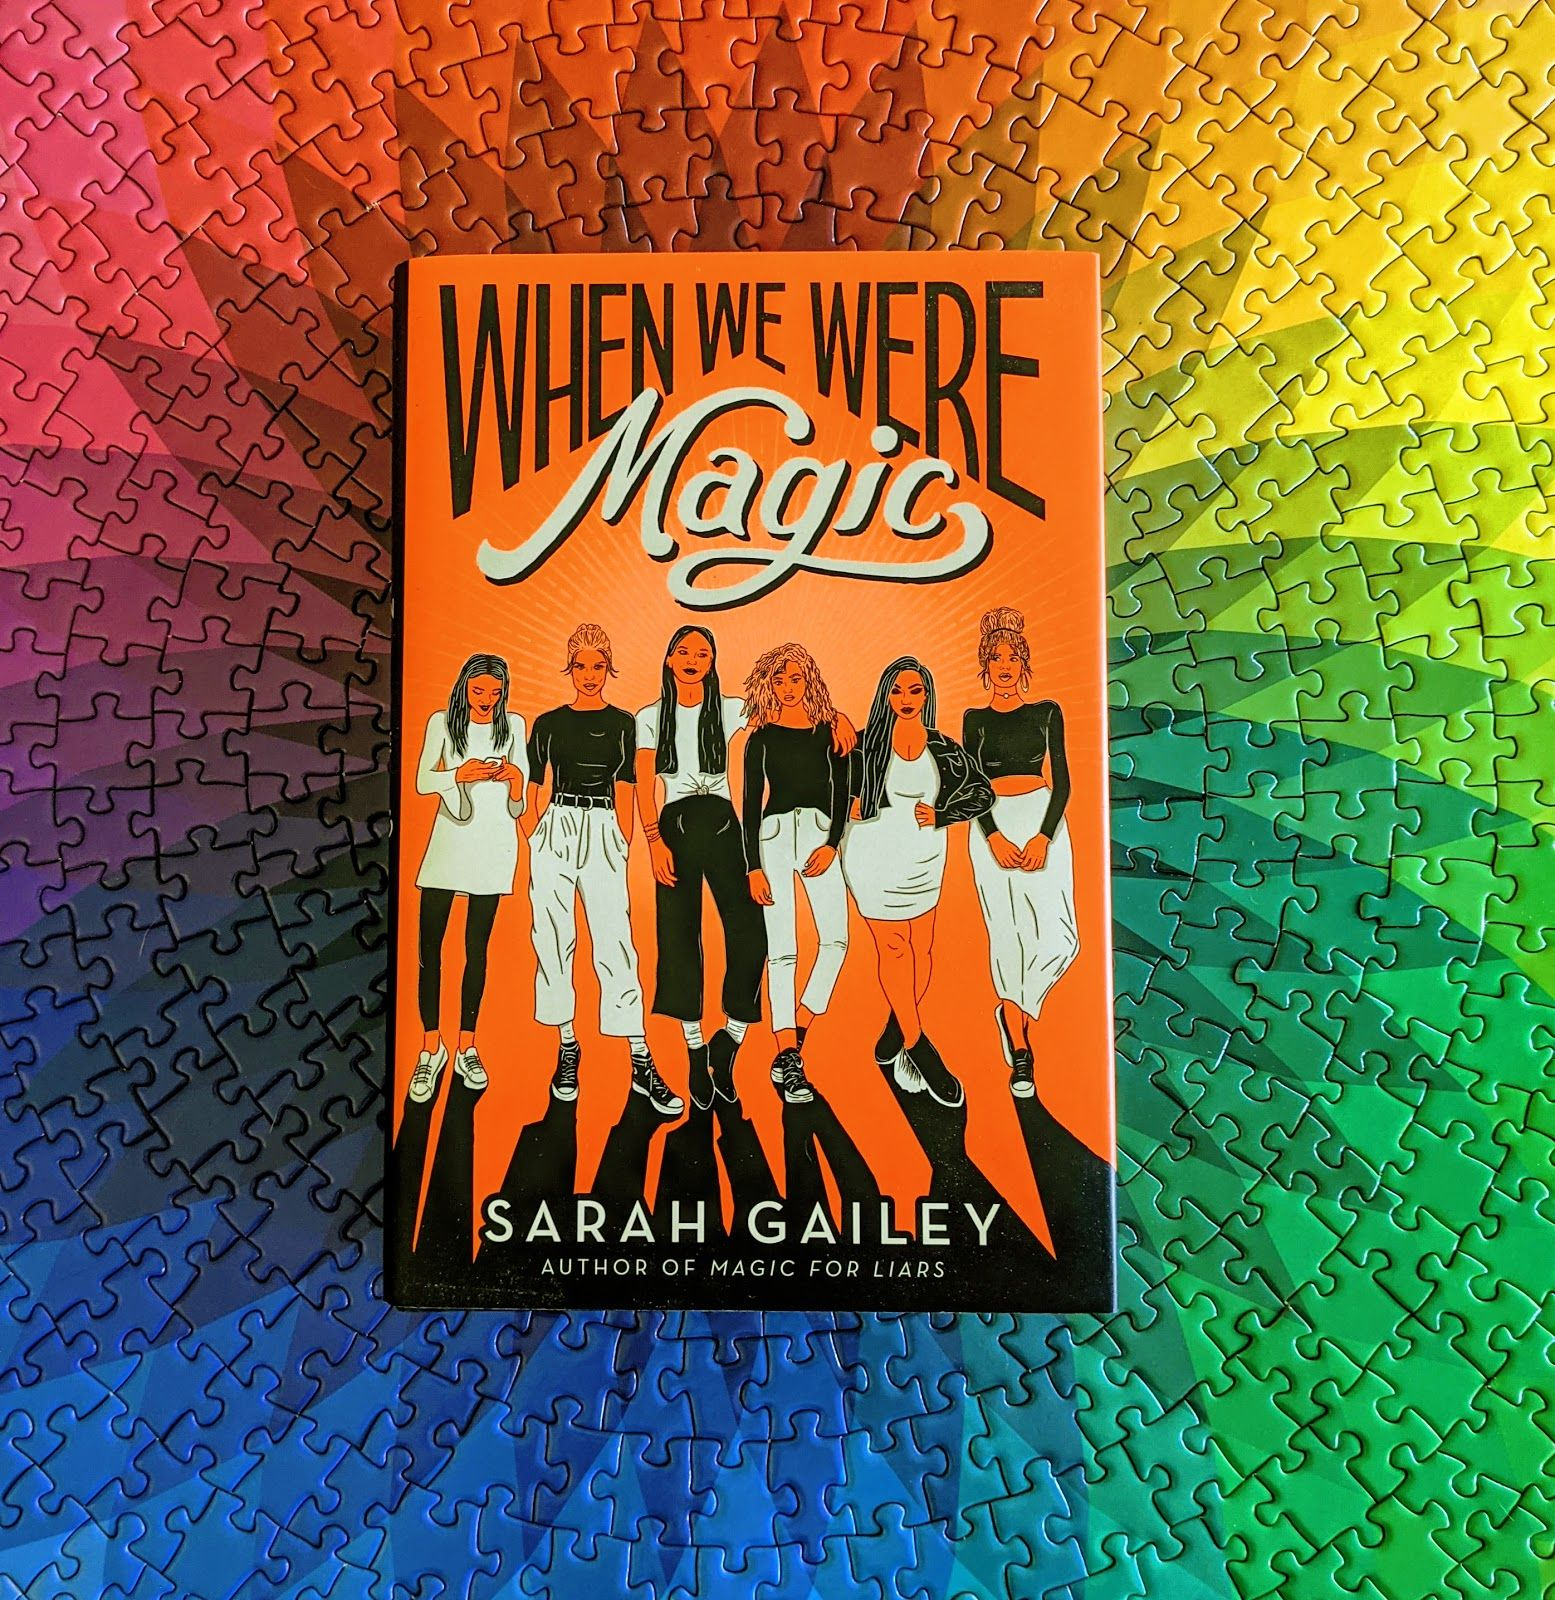 When We Were Magic has a bright orange cover featuring six femmes in black-and-white clothes looking like they don't give a shit about anyone else but each other. Here, the book is shown resting on a puzzle that is a rainbow spirograph. That puzzle took me a super long time to finish. I'm real proud of it.